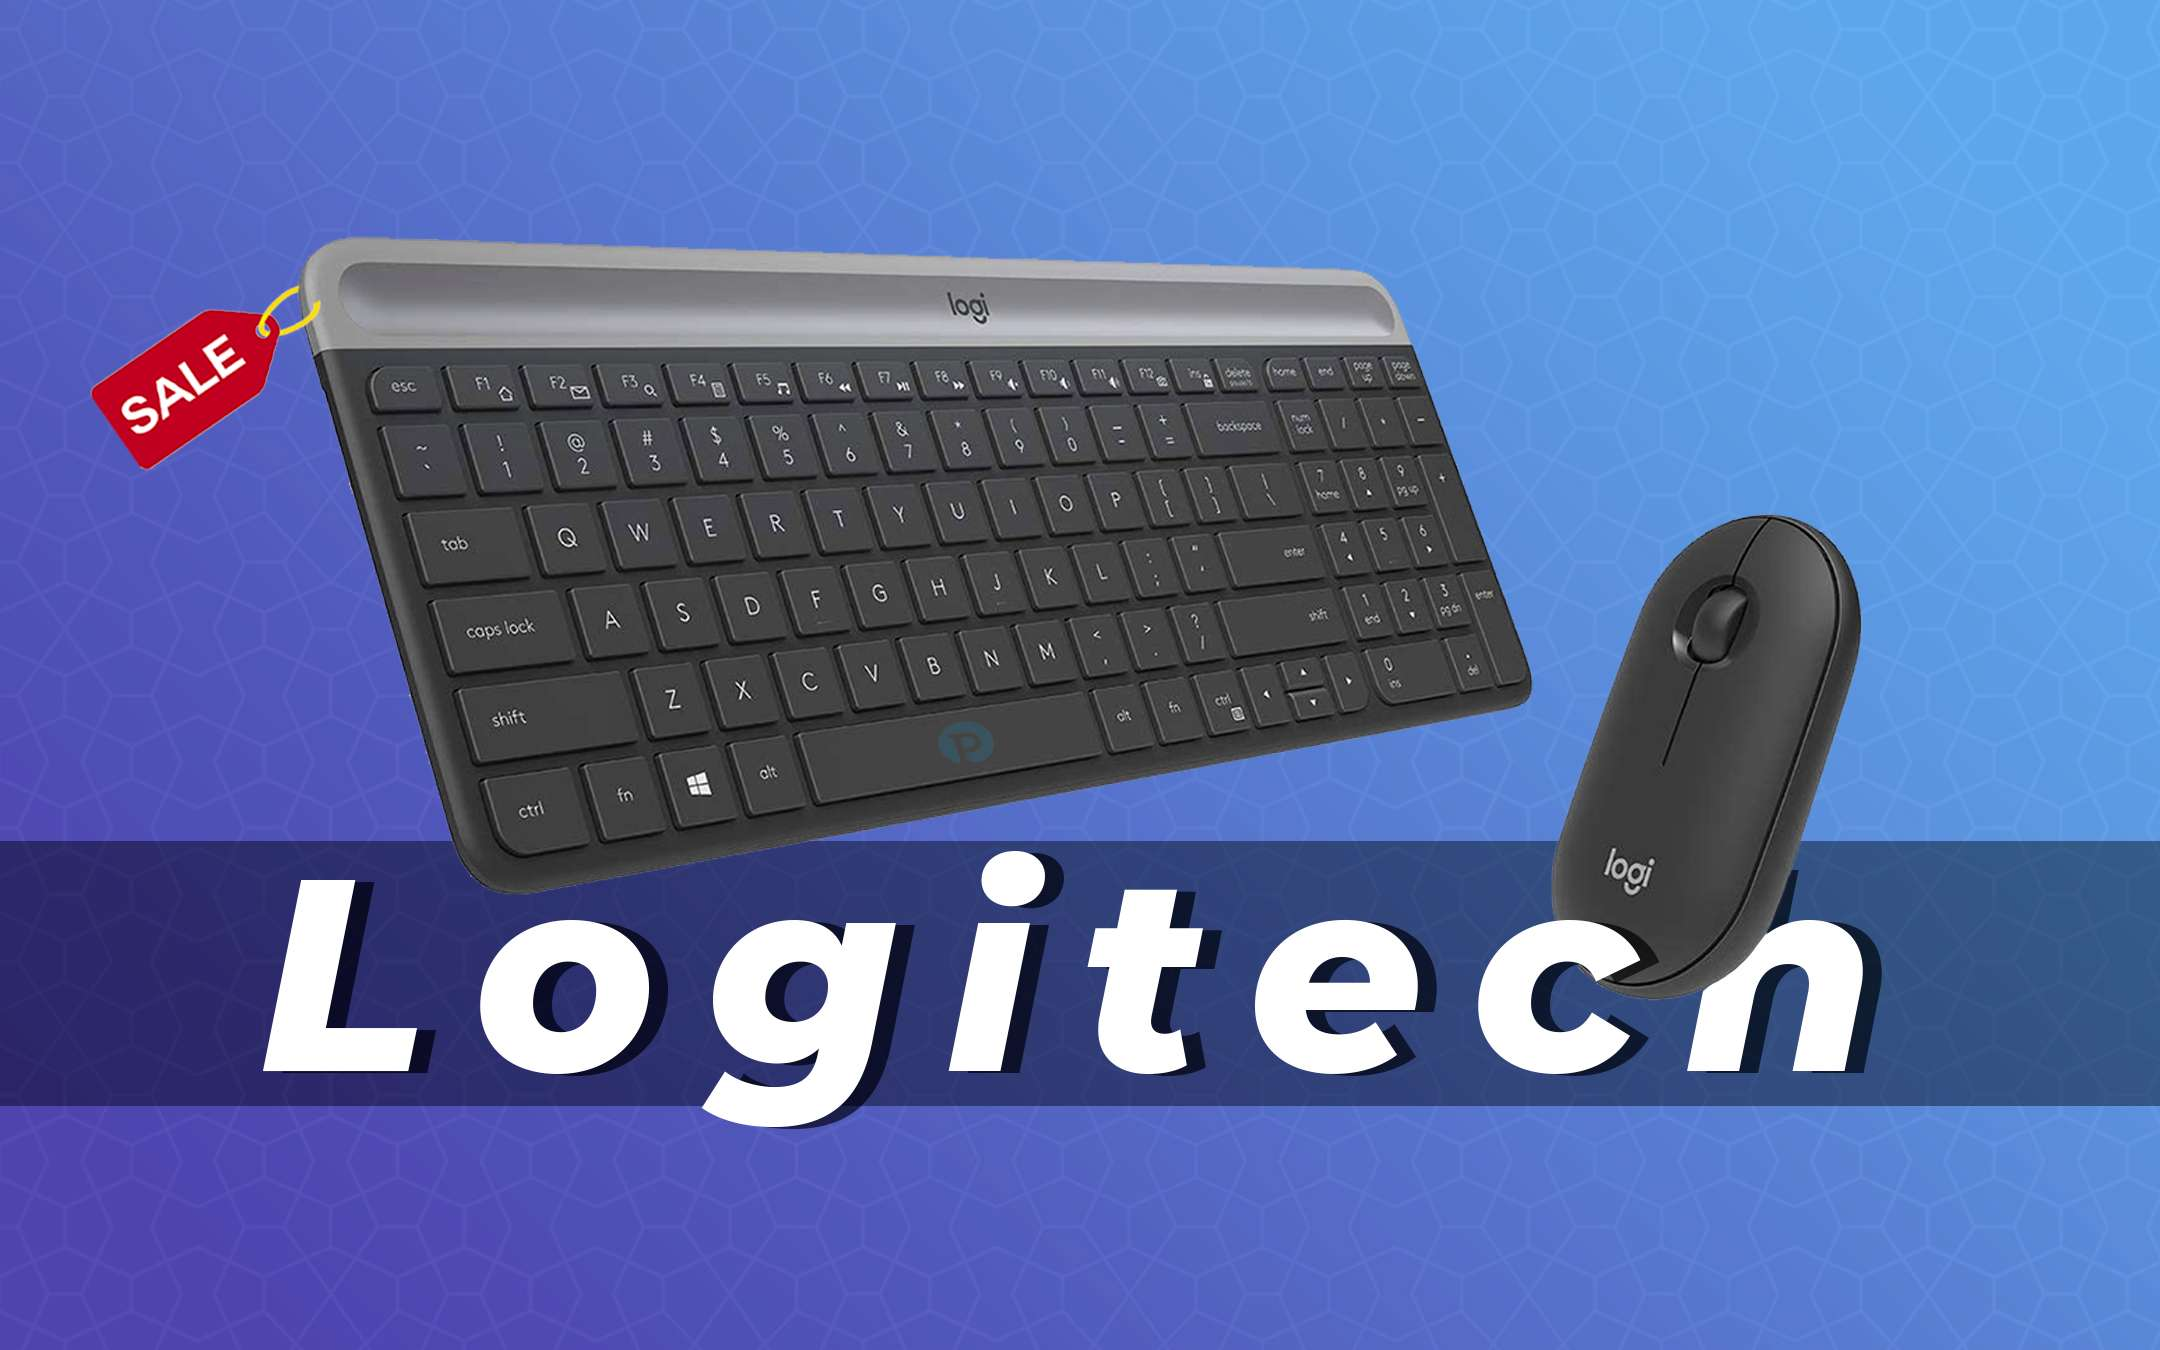 Logitech: Mouse and Keyboard kit on offer at 33% discount